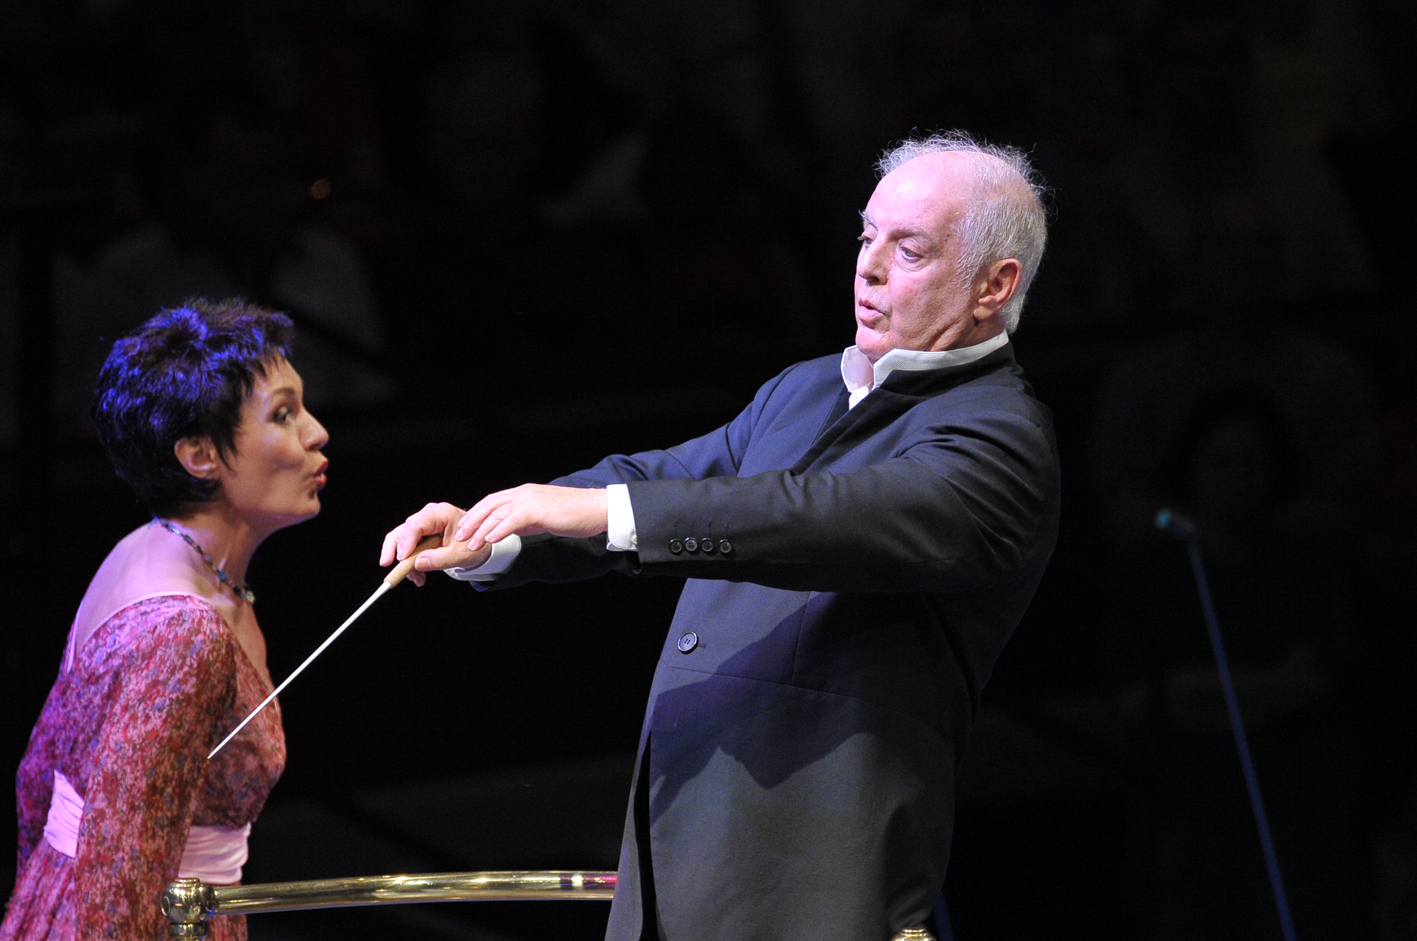 Daniel Barenboim conducts Waltraud Meier in the 2013 Proms